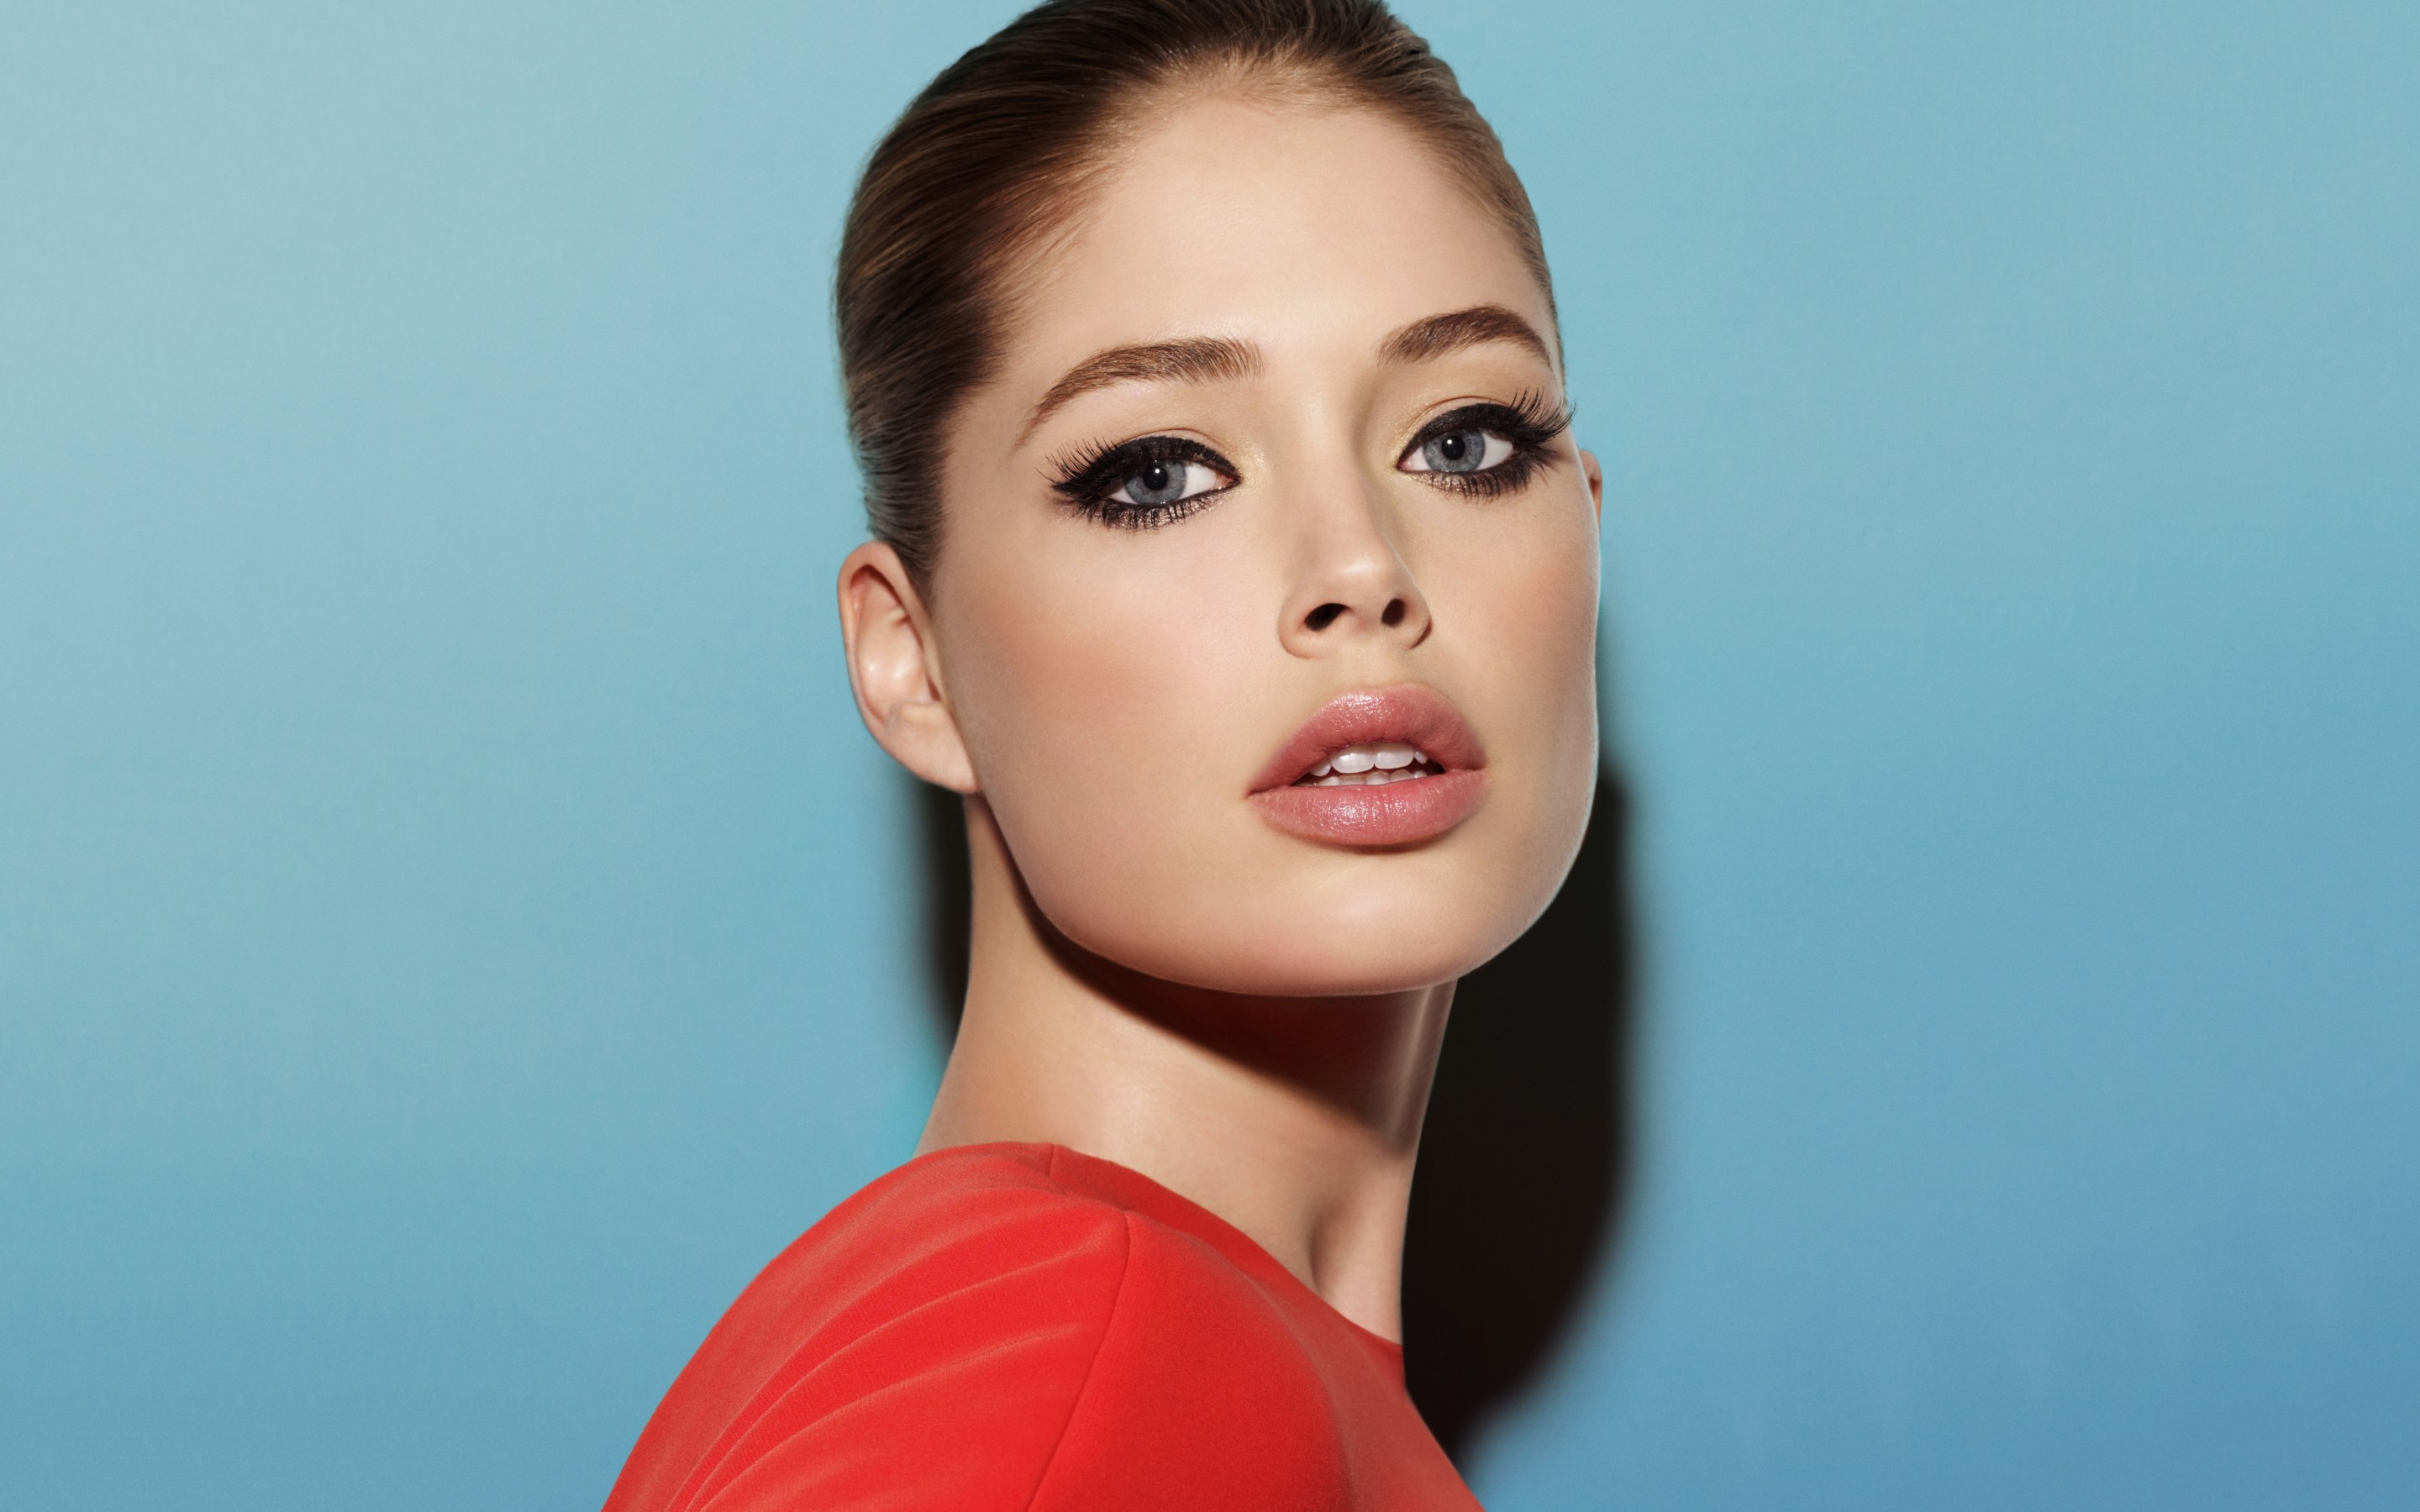 All Bollywood Girl Hd Wallpaper Facebook Covers For Doutzen Kroes Popopics Com